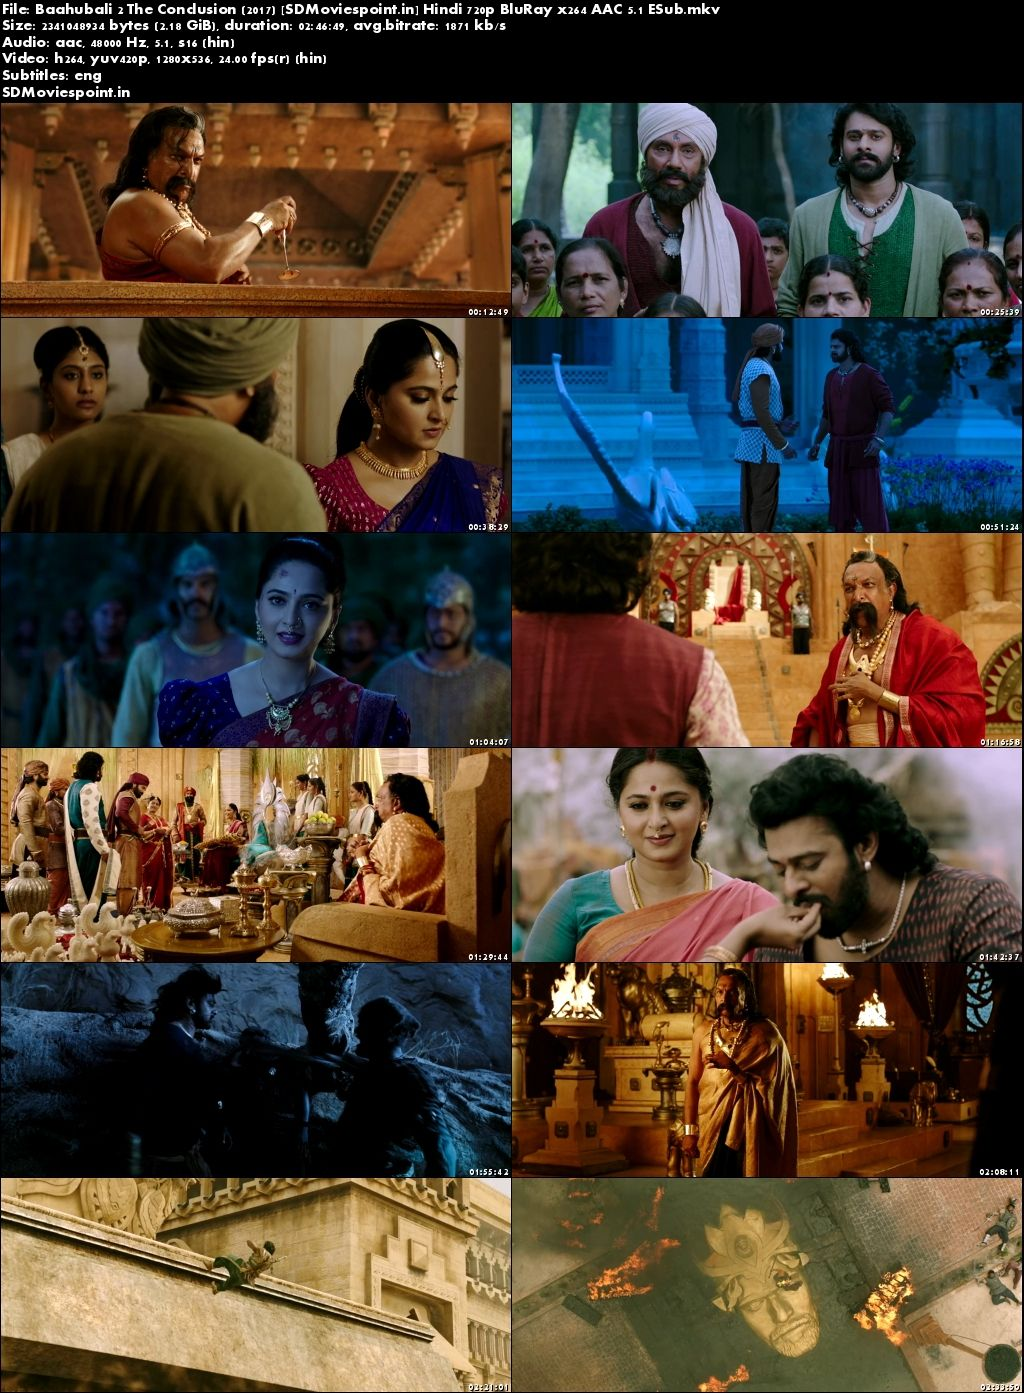 Screen Shots Baahubali 2 (2017) Full HD Movie Download Free In Hindi 720p